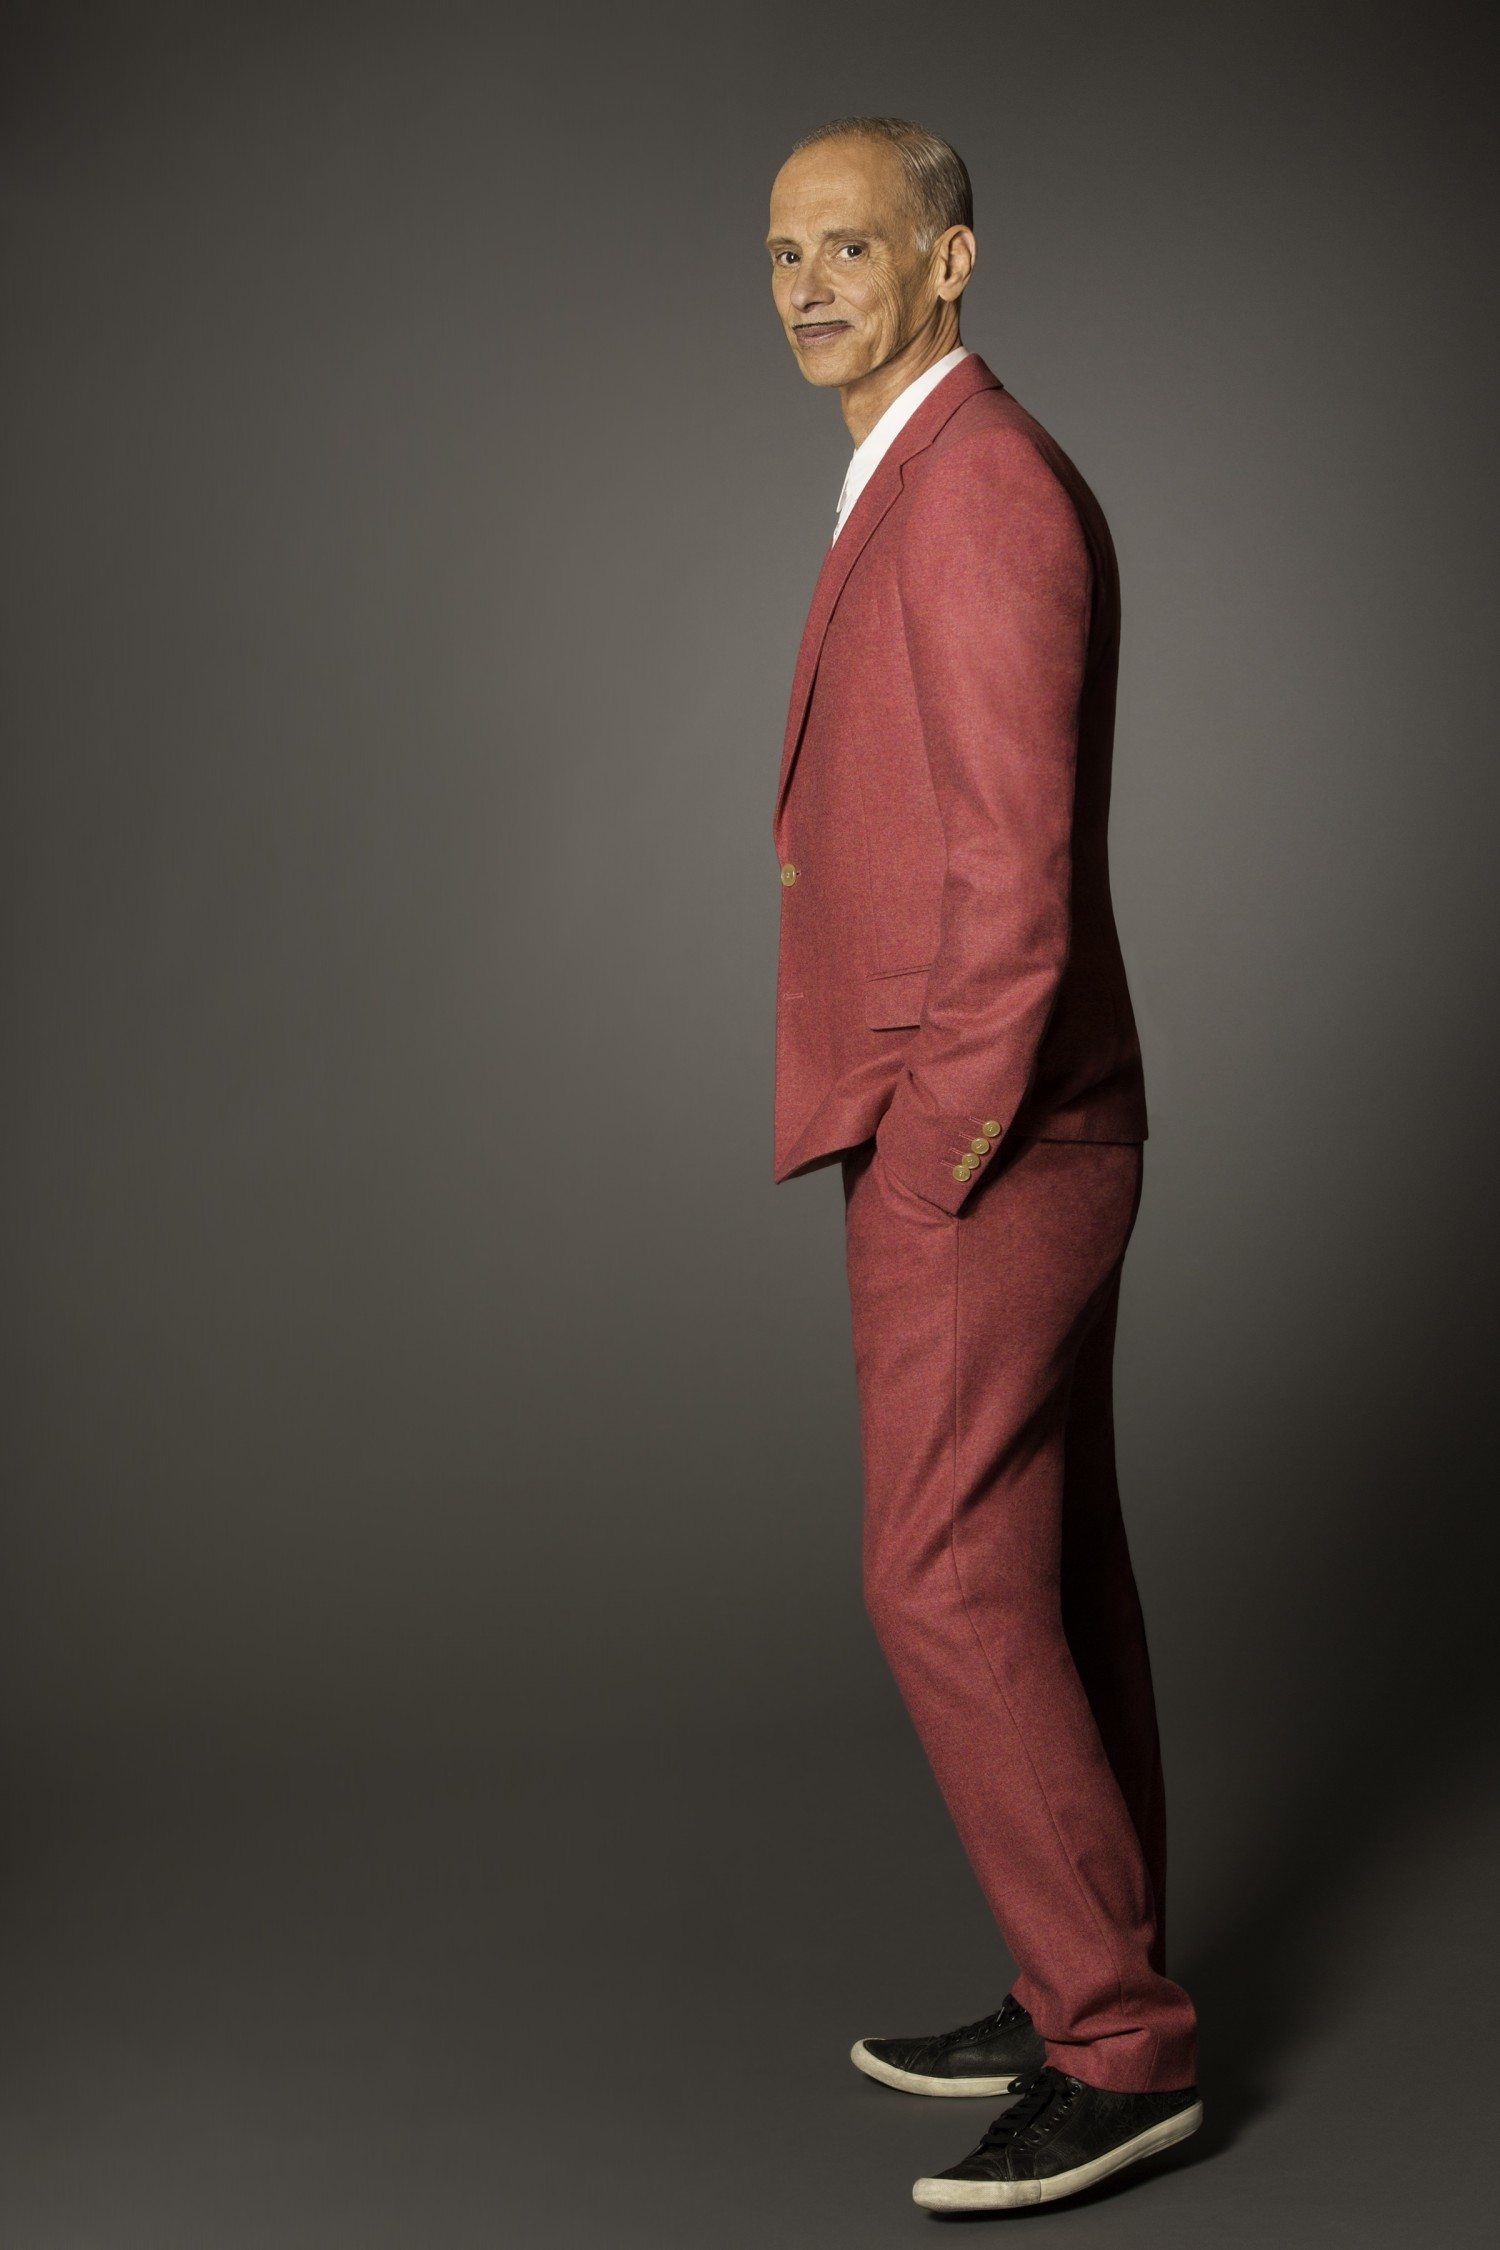 Photo: Greg Gorman